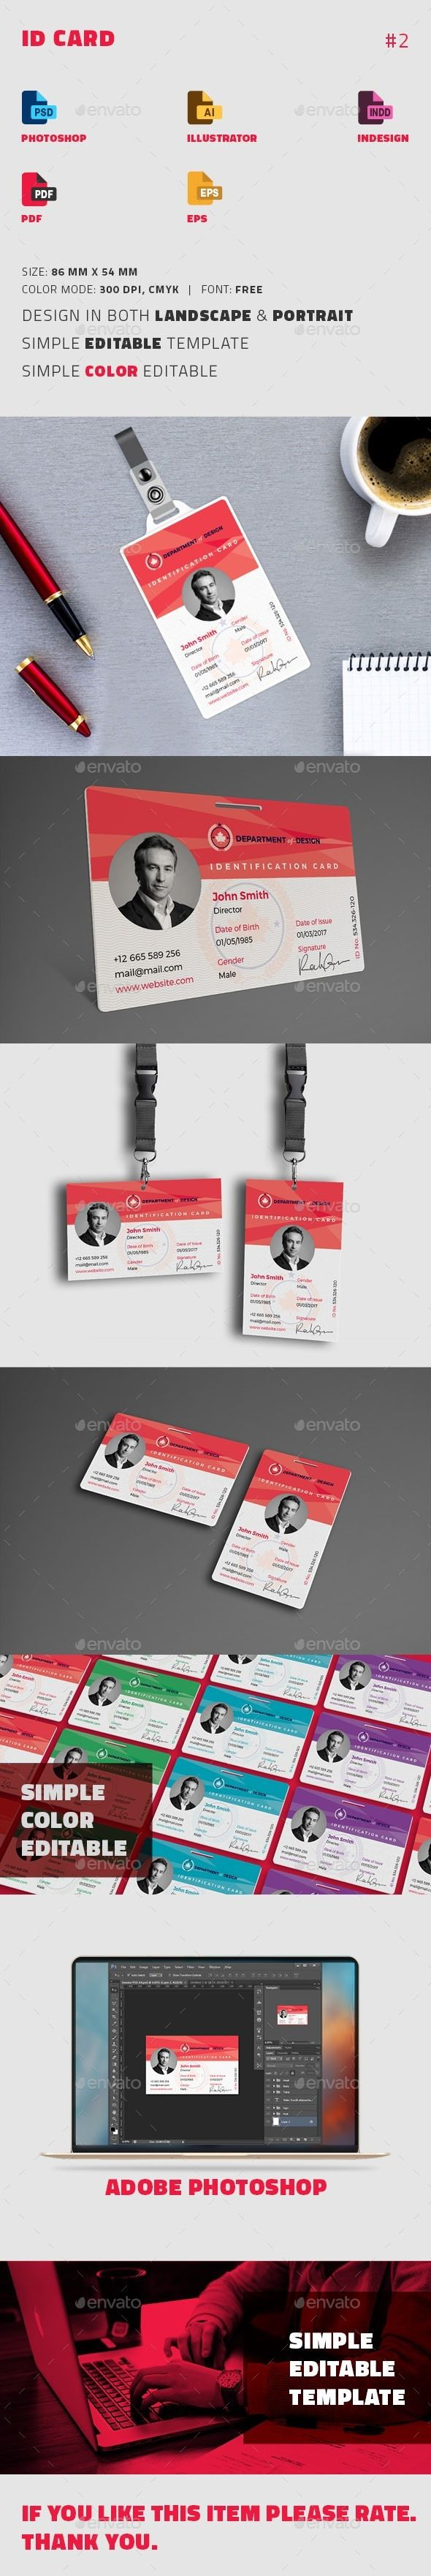 ID Card Design Template PSD, Vector EPS, InDesign INDD, AI Illustrator